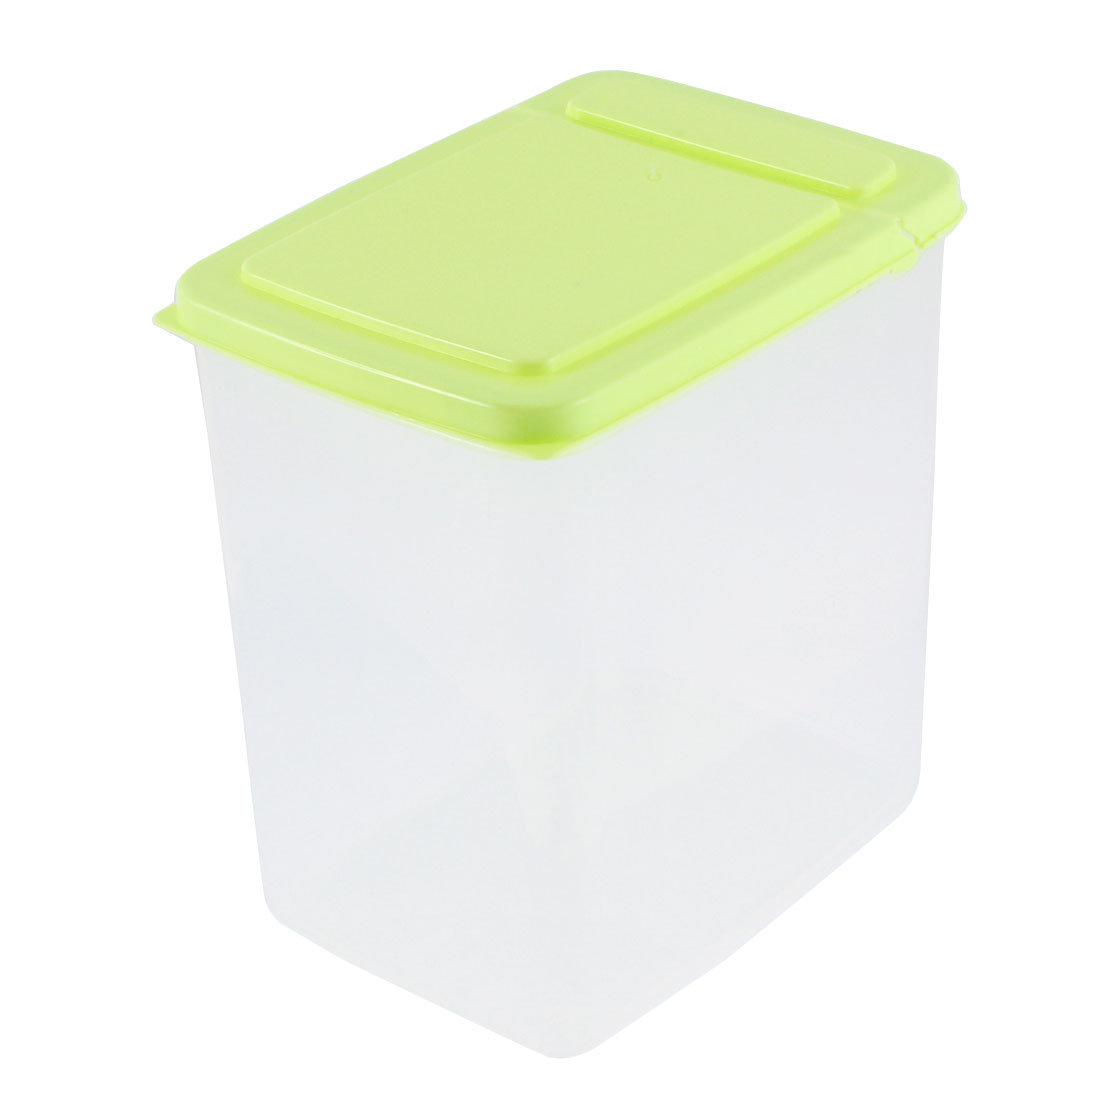 Office Plastic Food Storage Case Container 15cm x 11cm x 16cm 2L Green